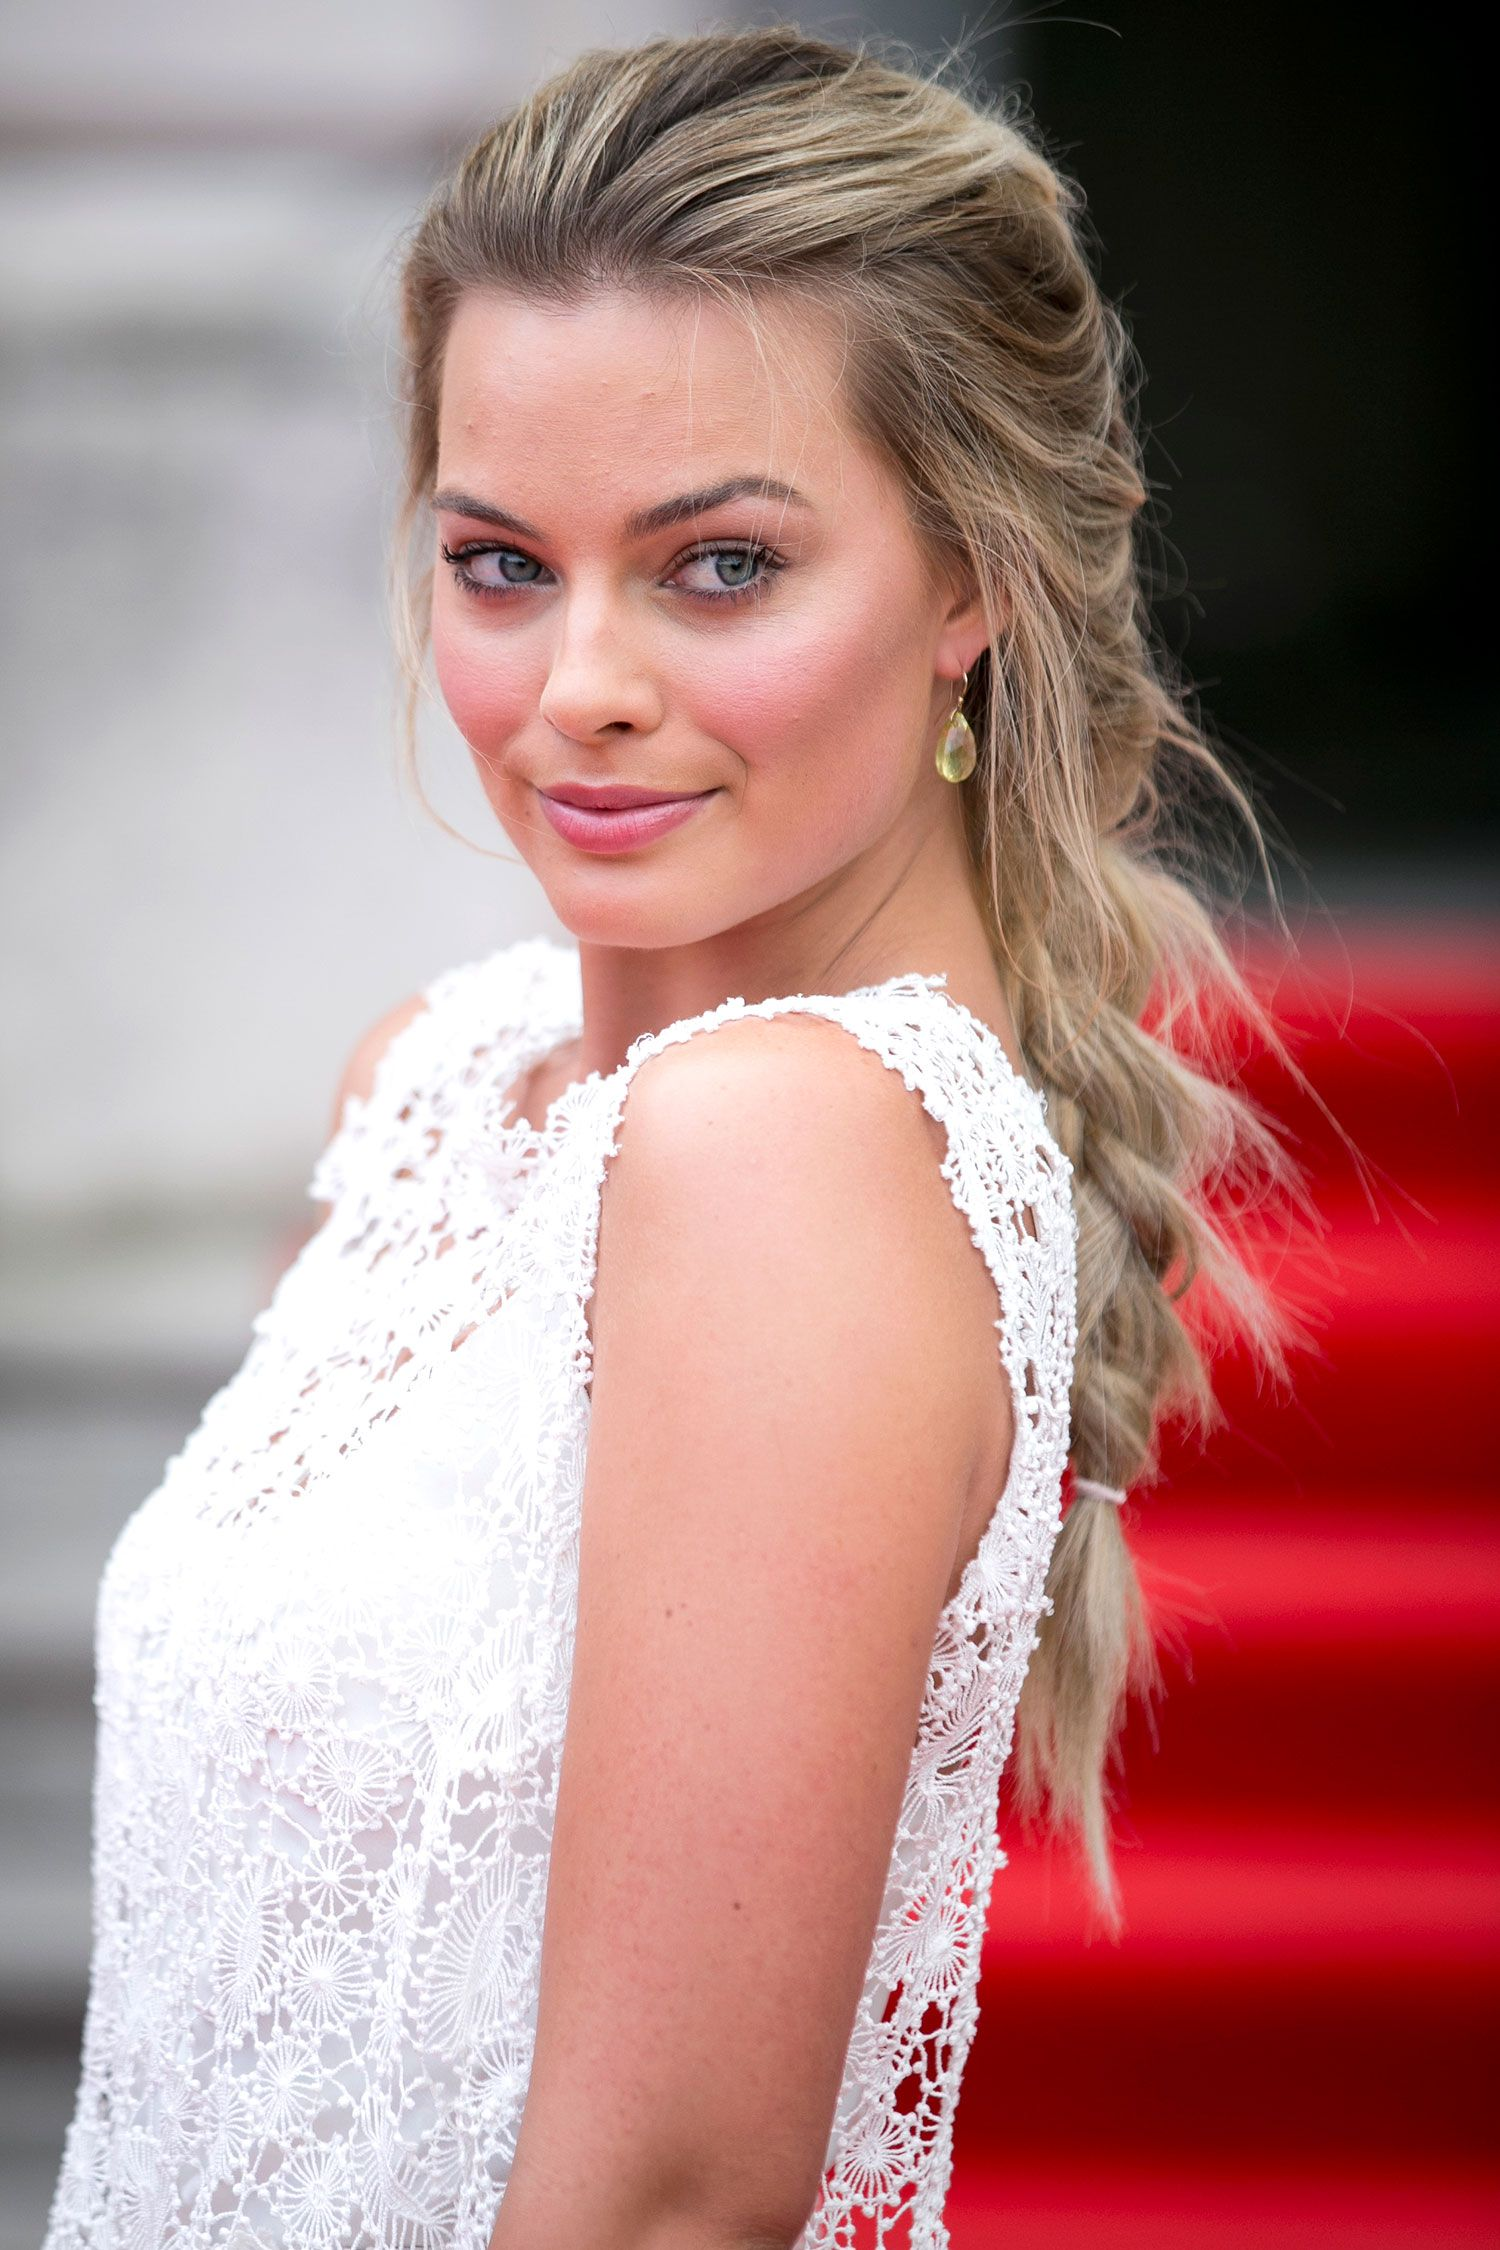 18 best braided hairstyles - best crown, side, and french braid ideas